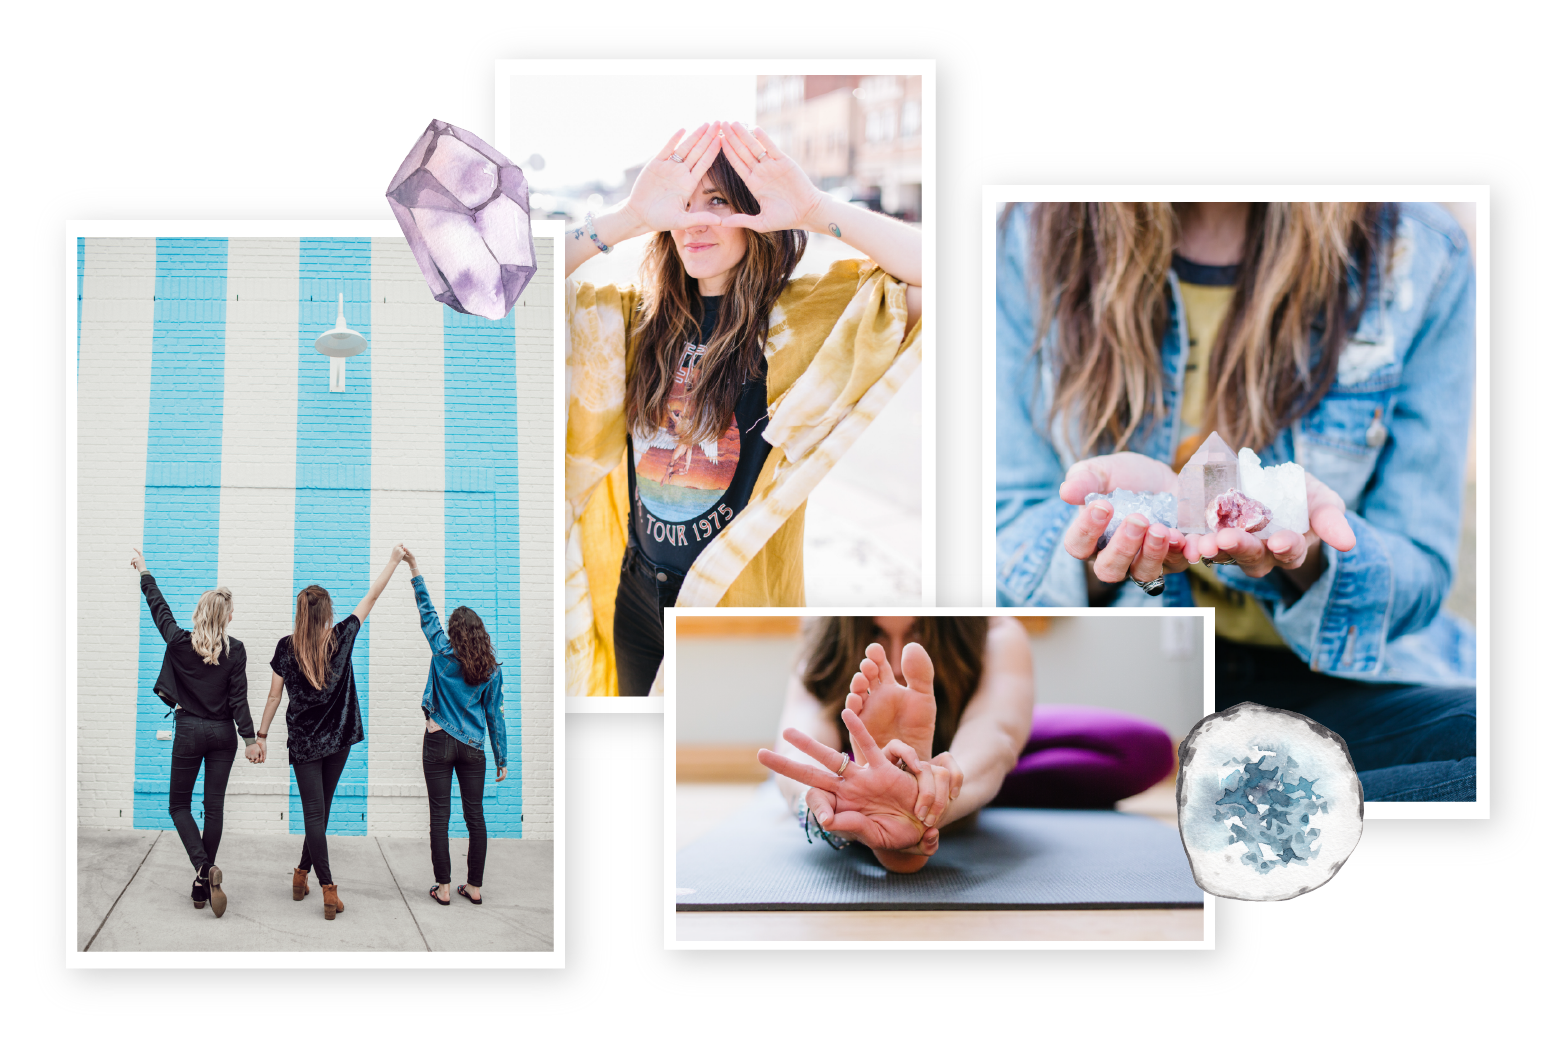 A new kind of community for beauty professionals - The Limitless Collective is an inspiring membership community, your personal metaphysical toolbox, and a space of loving, uplifting energy. We created The Limitless Collective for beauty professionals to offer guidance on awakening you to be an empowered light worker!